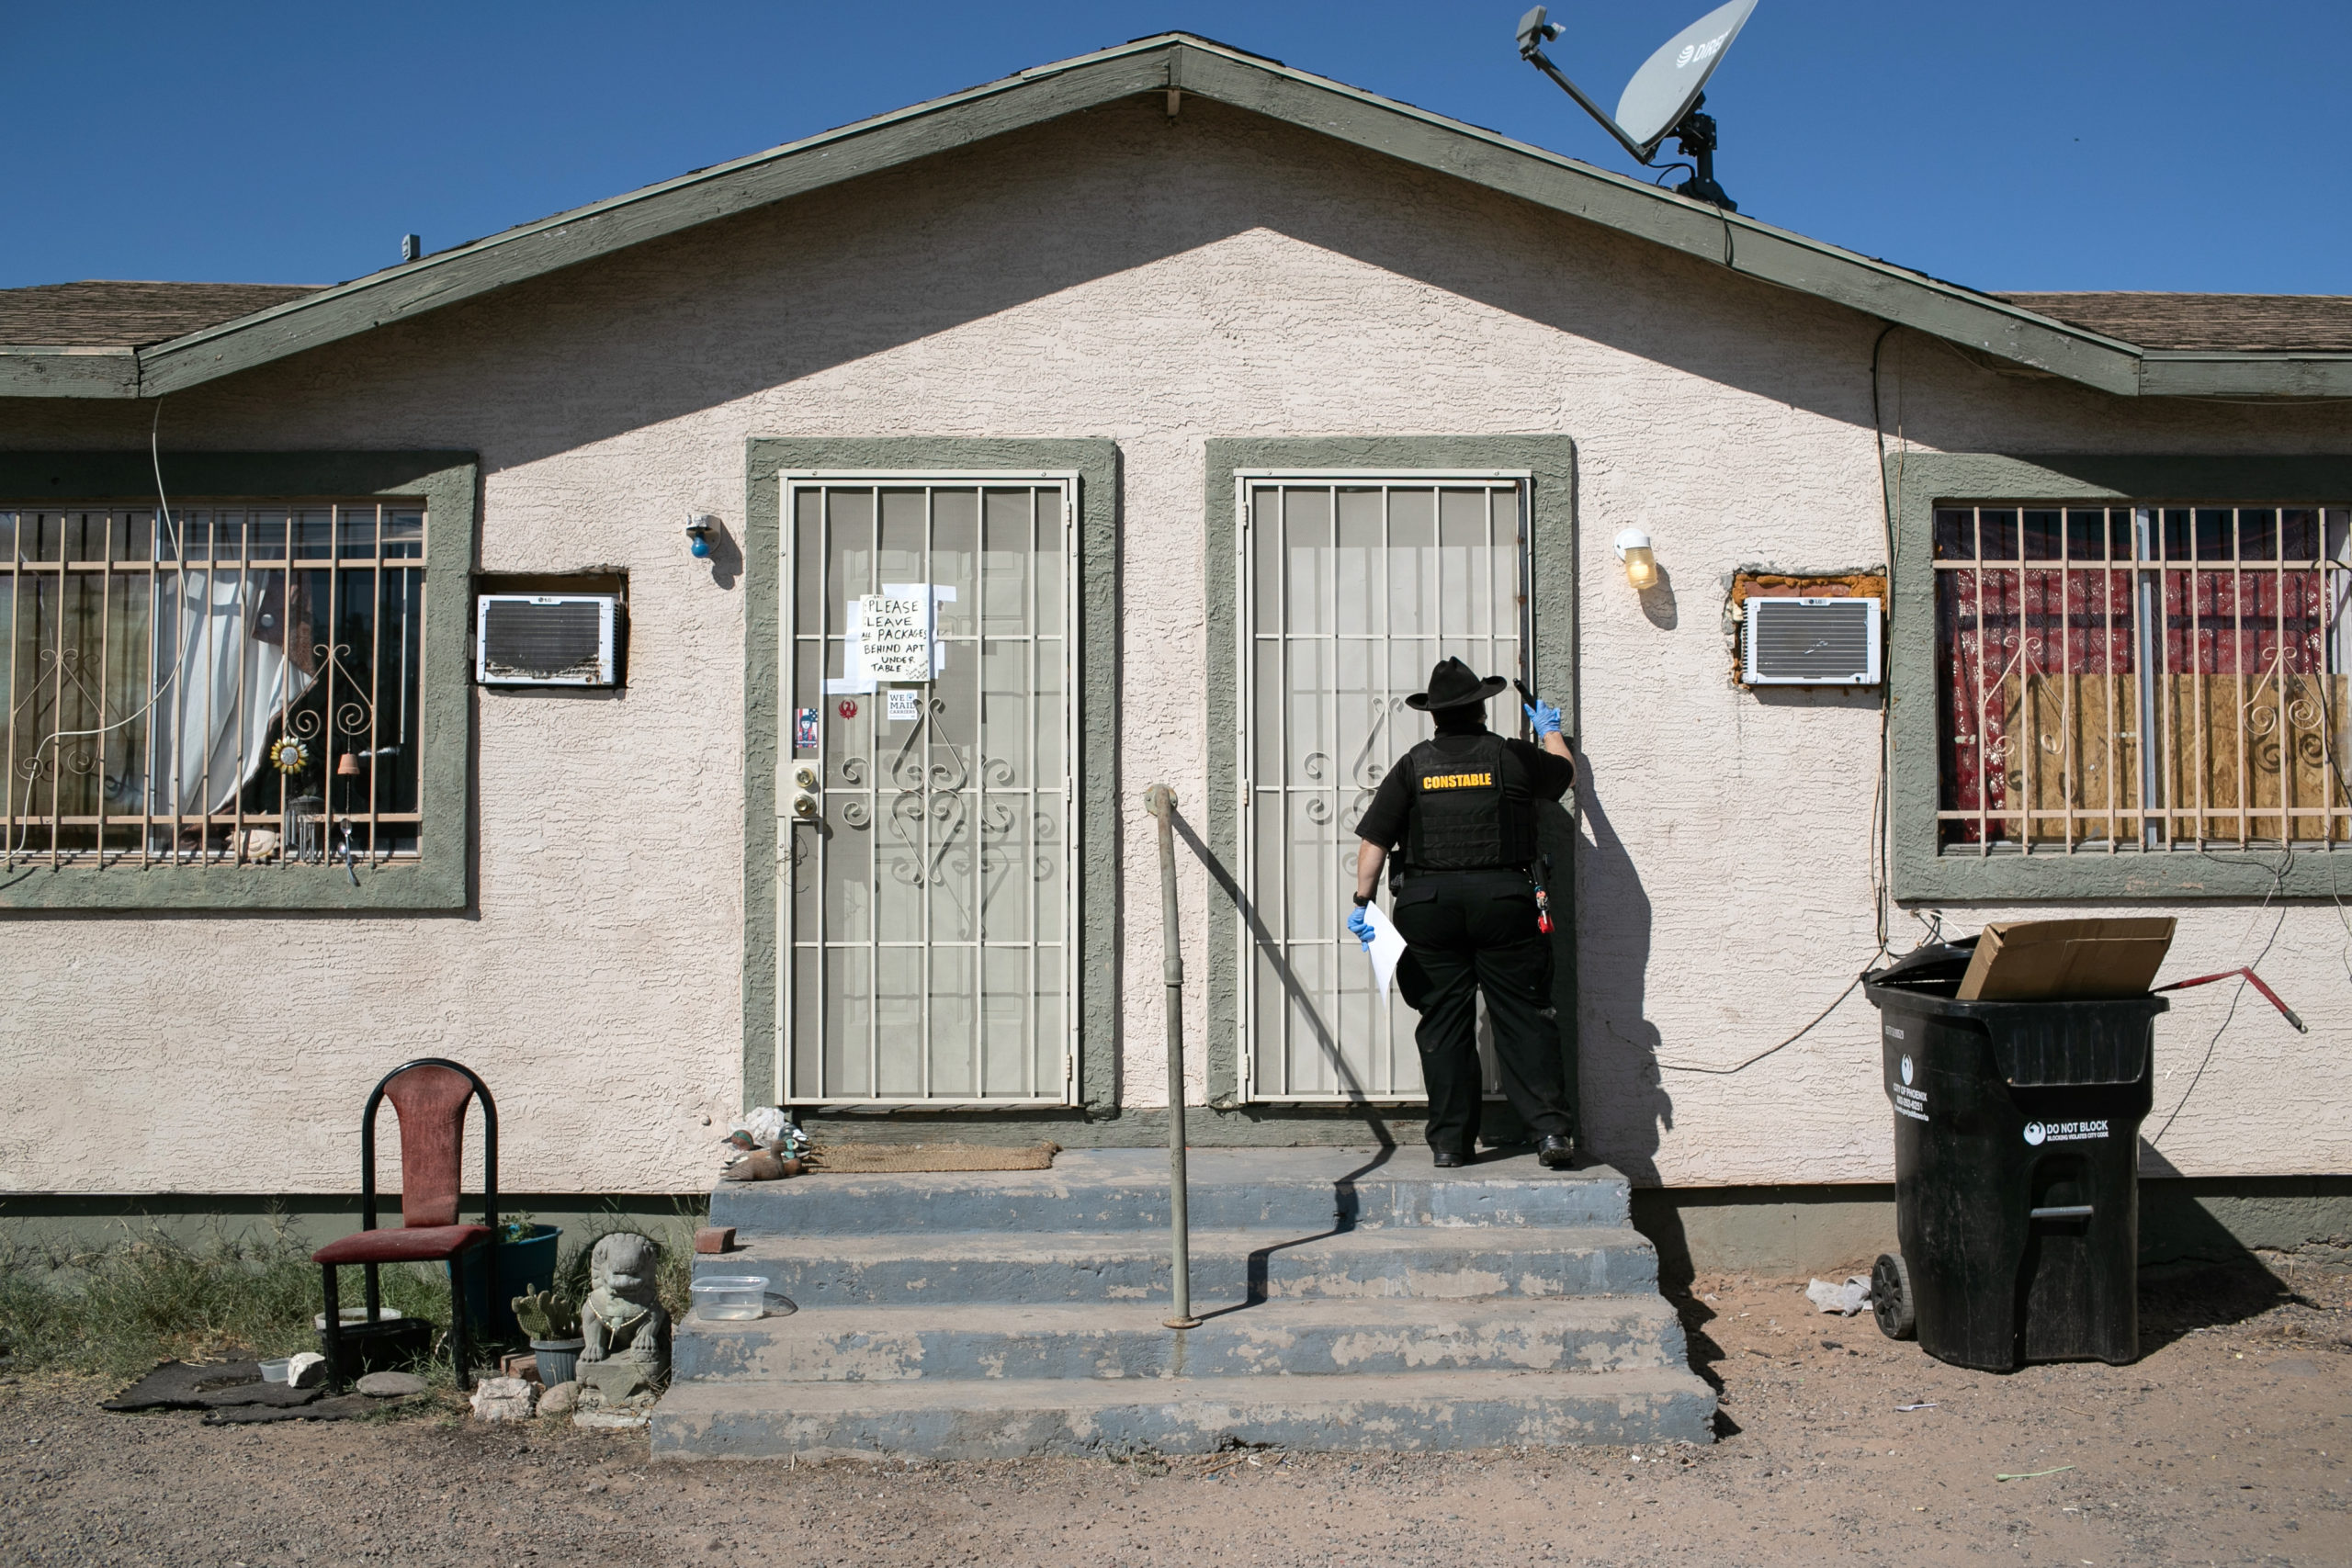 Officer tasked with serving evictions